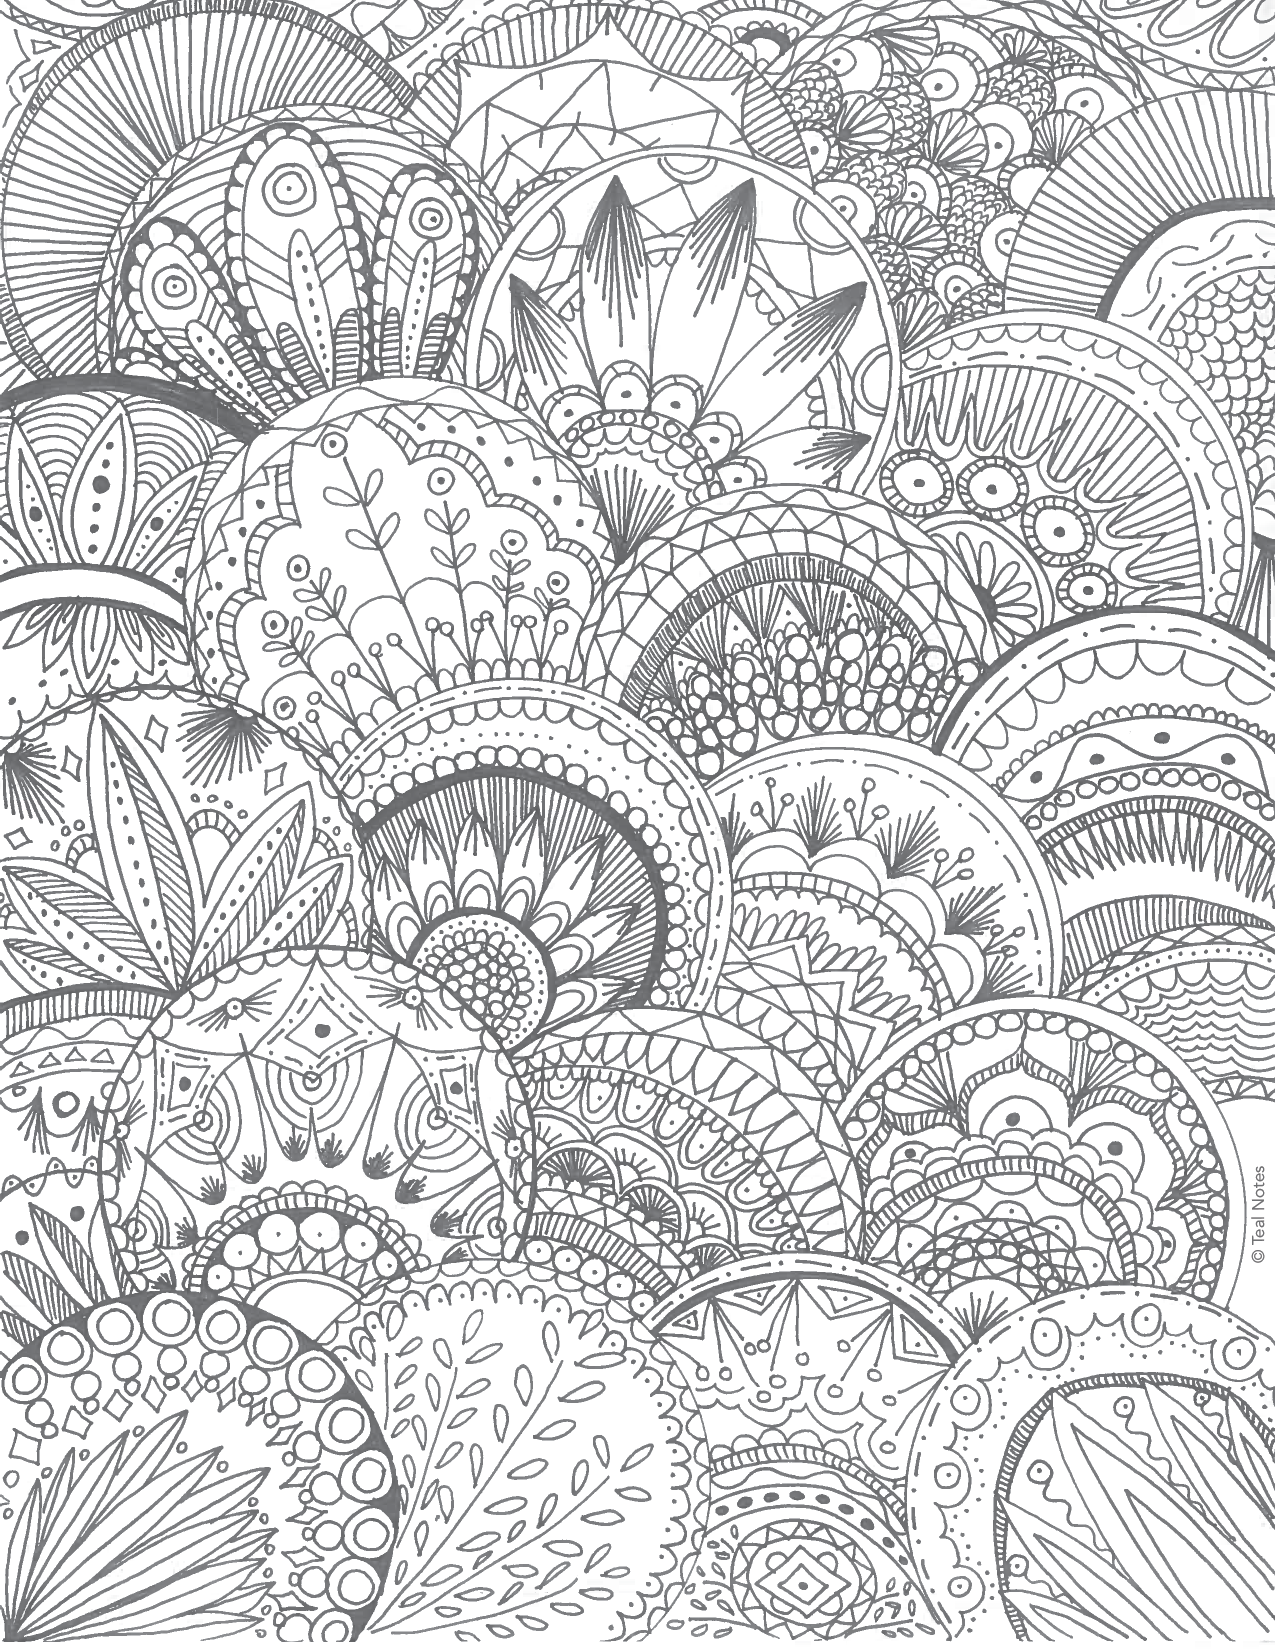 Free Printable Coloring Pages: 10 NEW Printable Coloring To Color And Relax